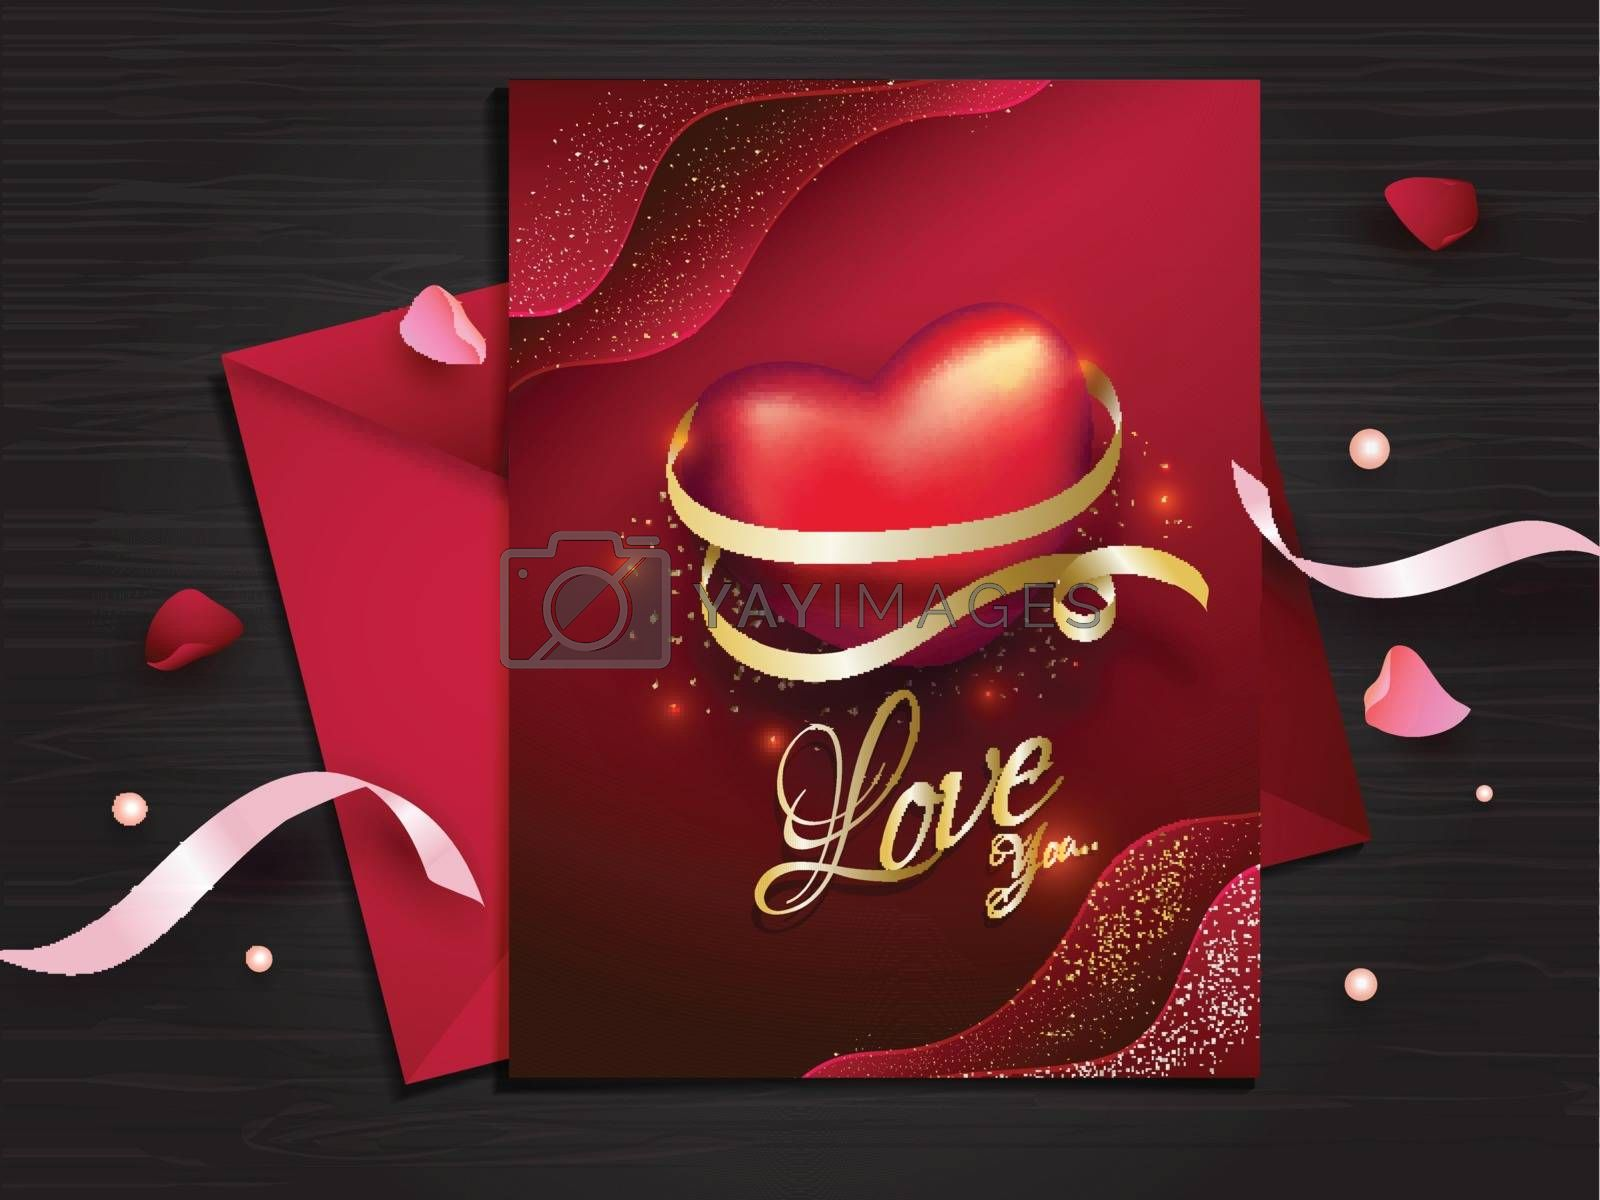 Love greeting card design in red color decorated with ribbons and flower petals for Valentine's Day celebration.